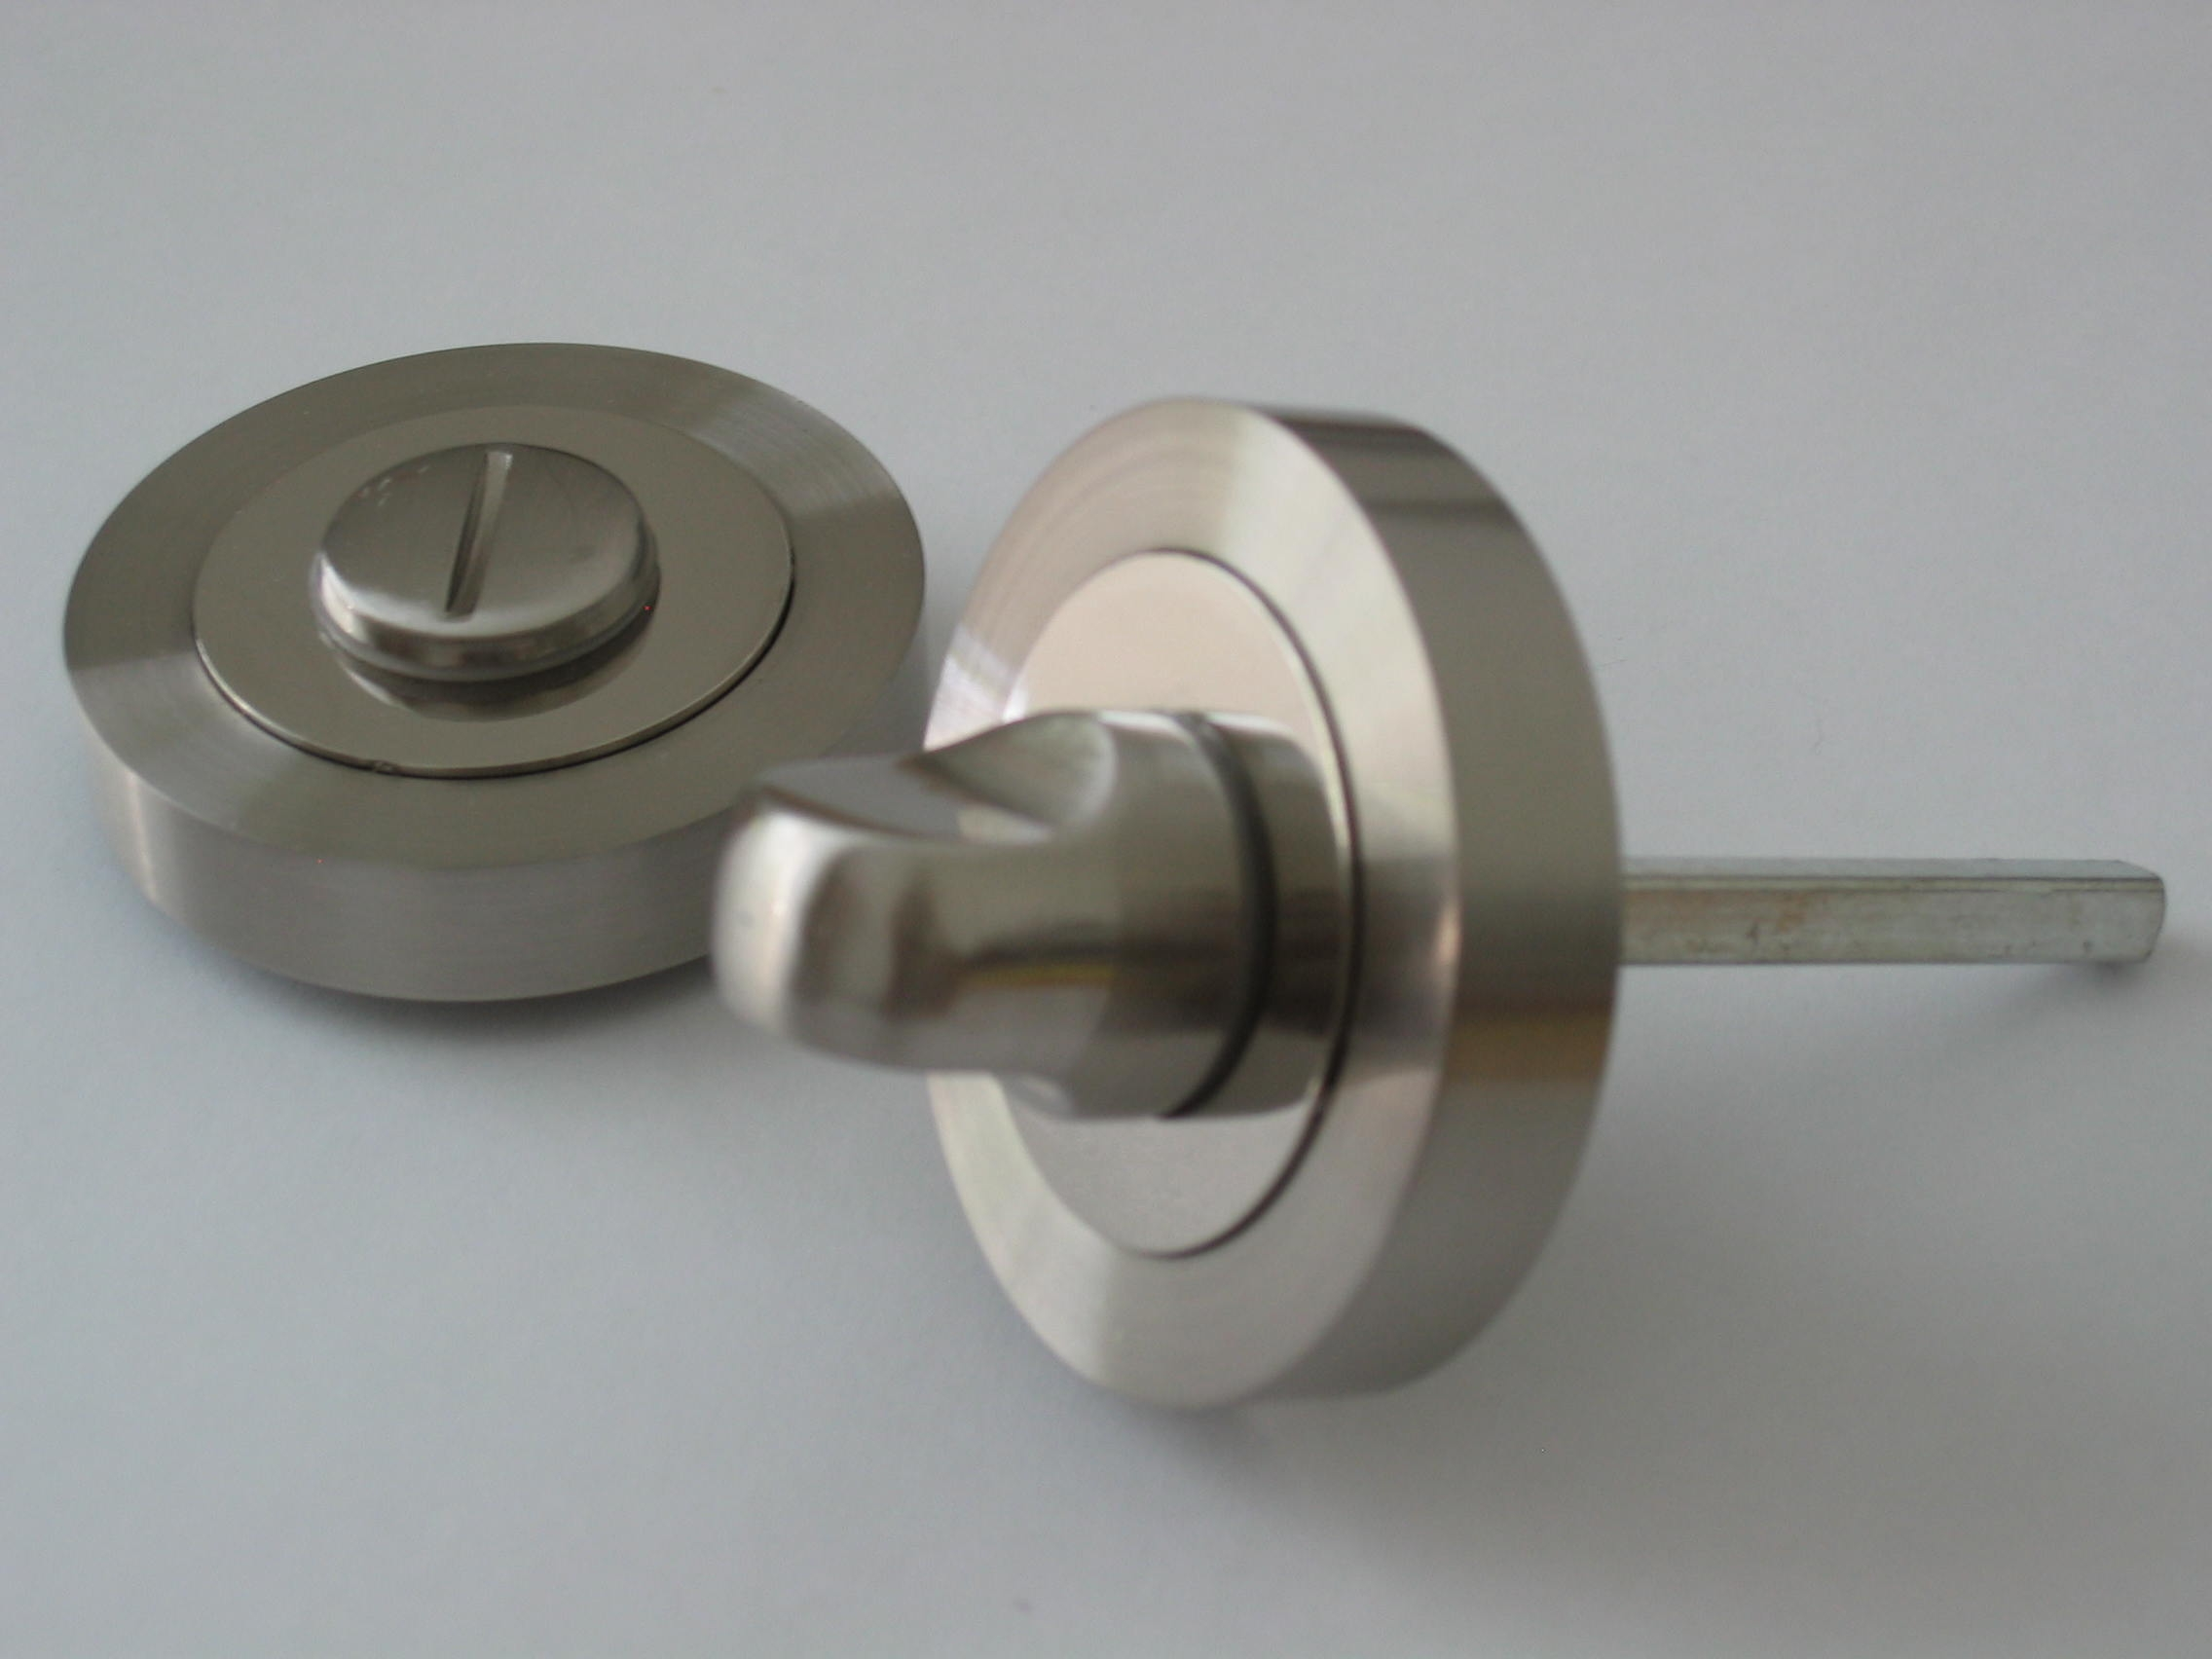 Permalink to Bathroom Door Knob With Lock